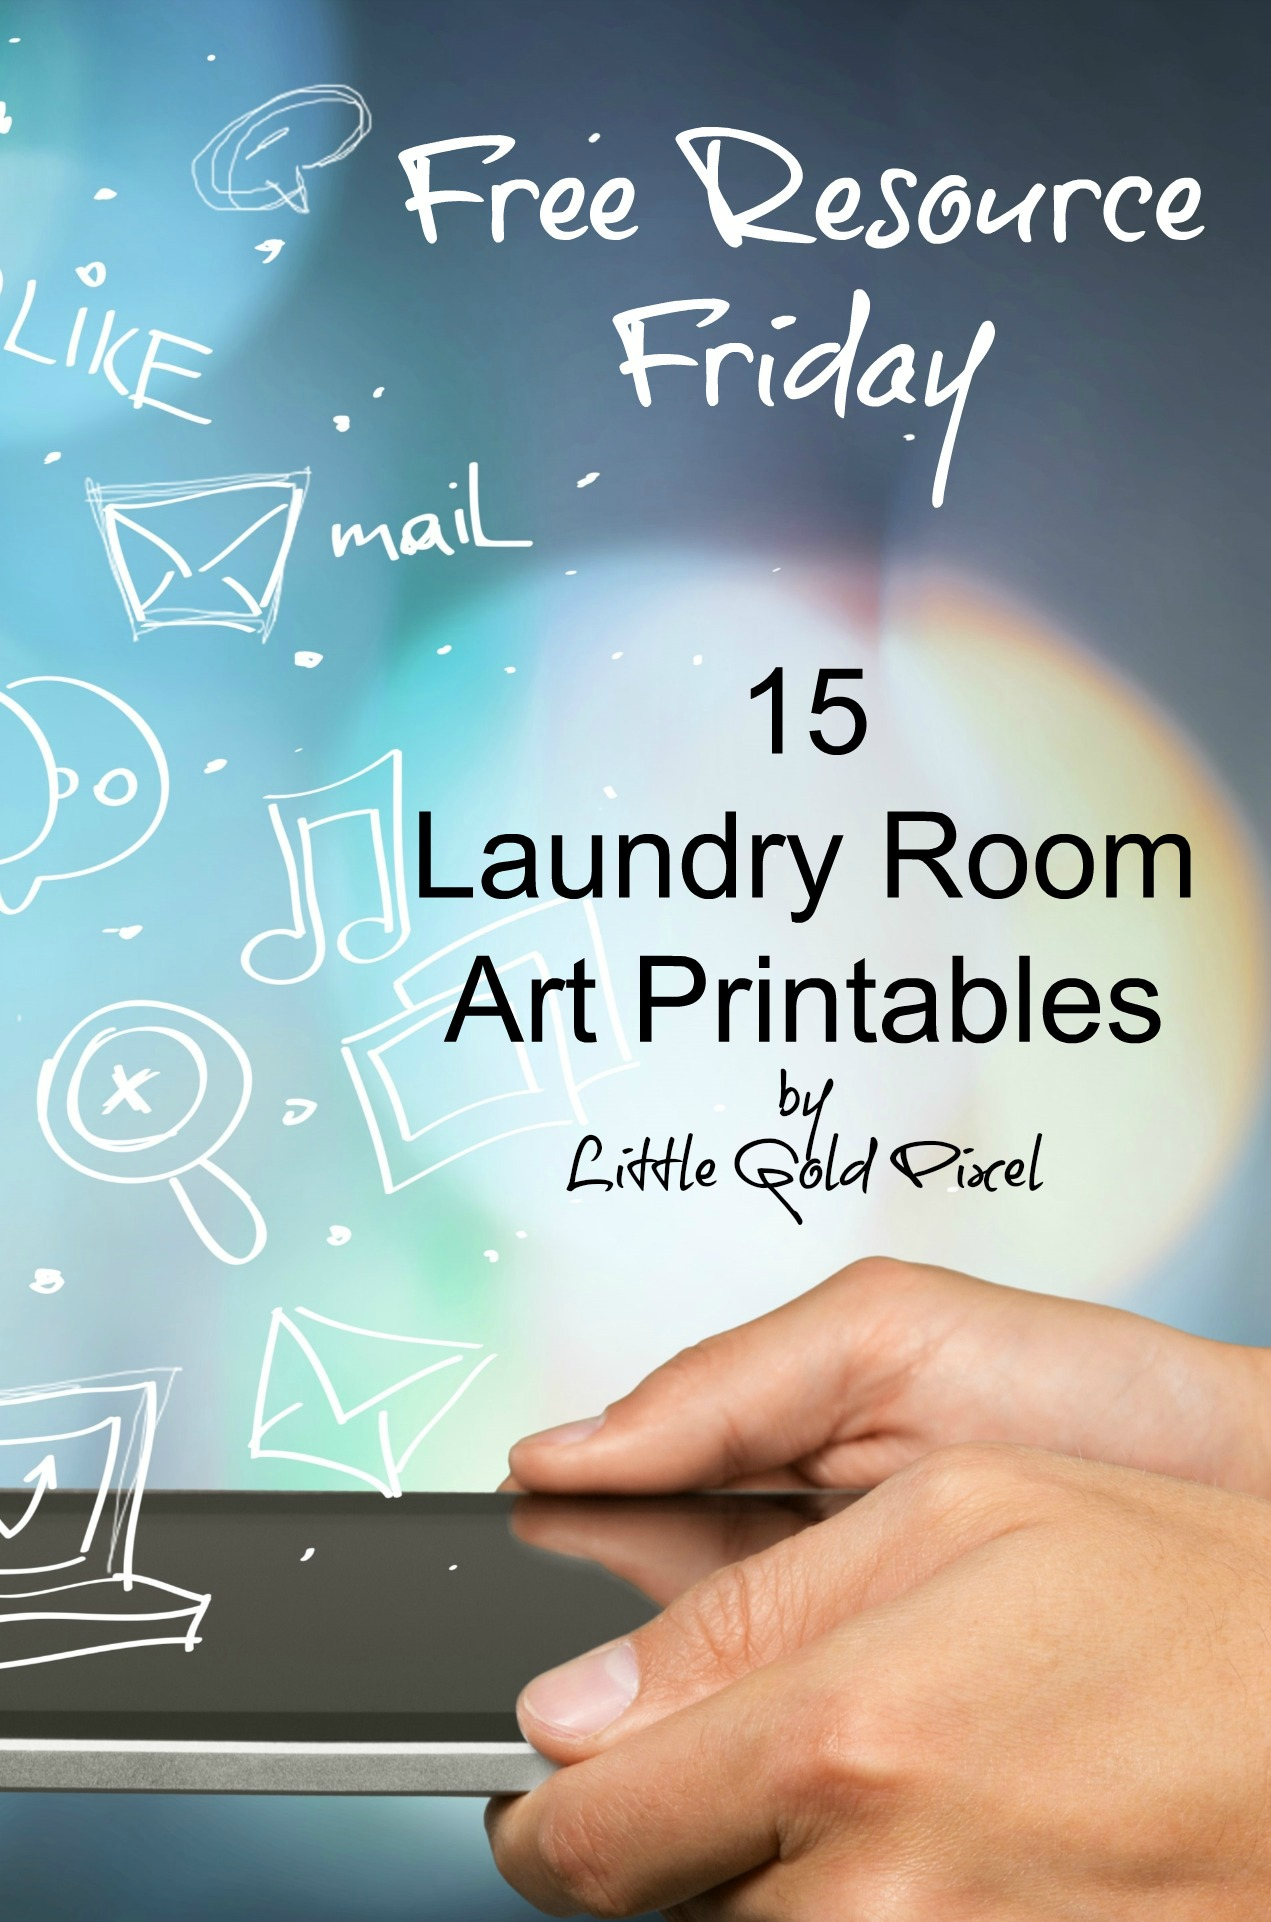 Laundry Room Free Printables - Free Resource Friday - Frugal Upstate